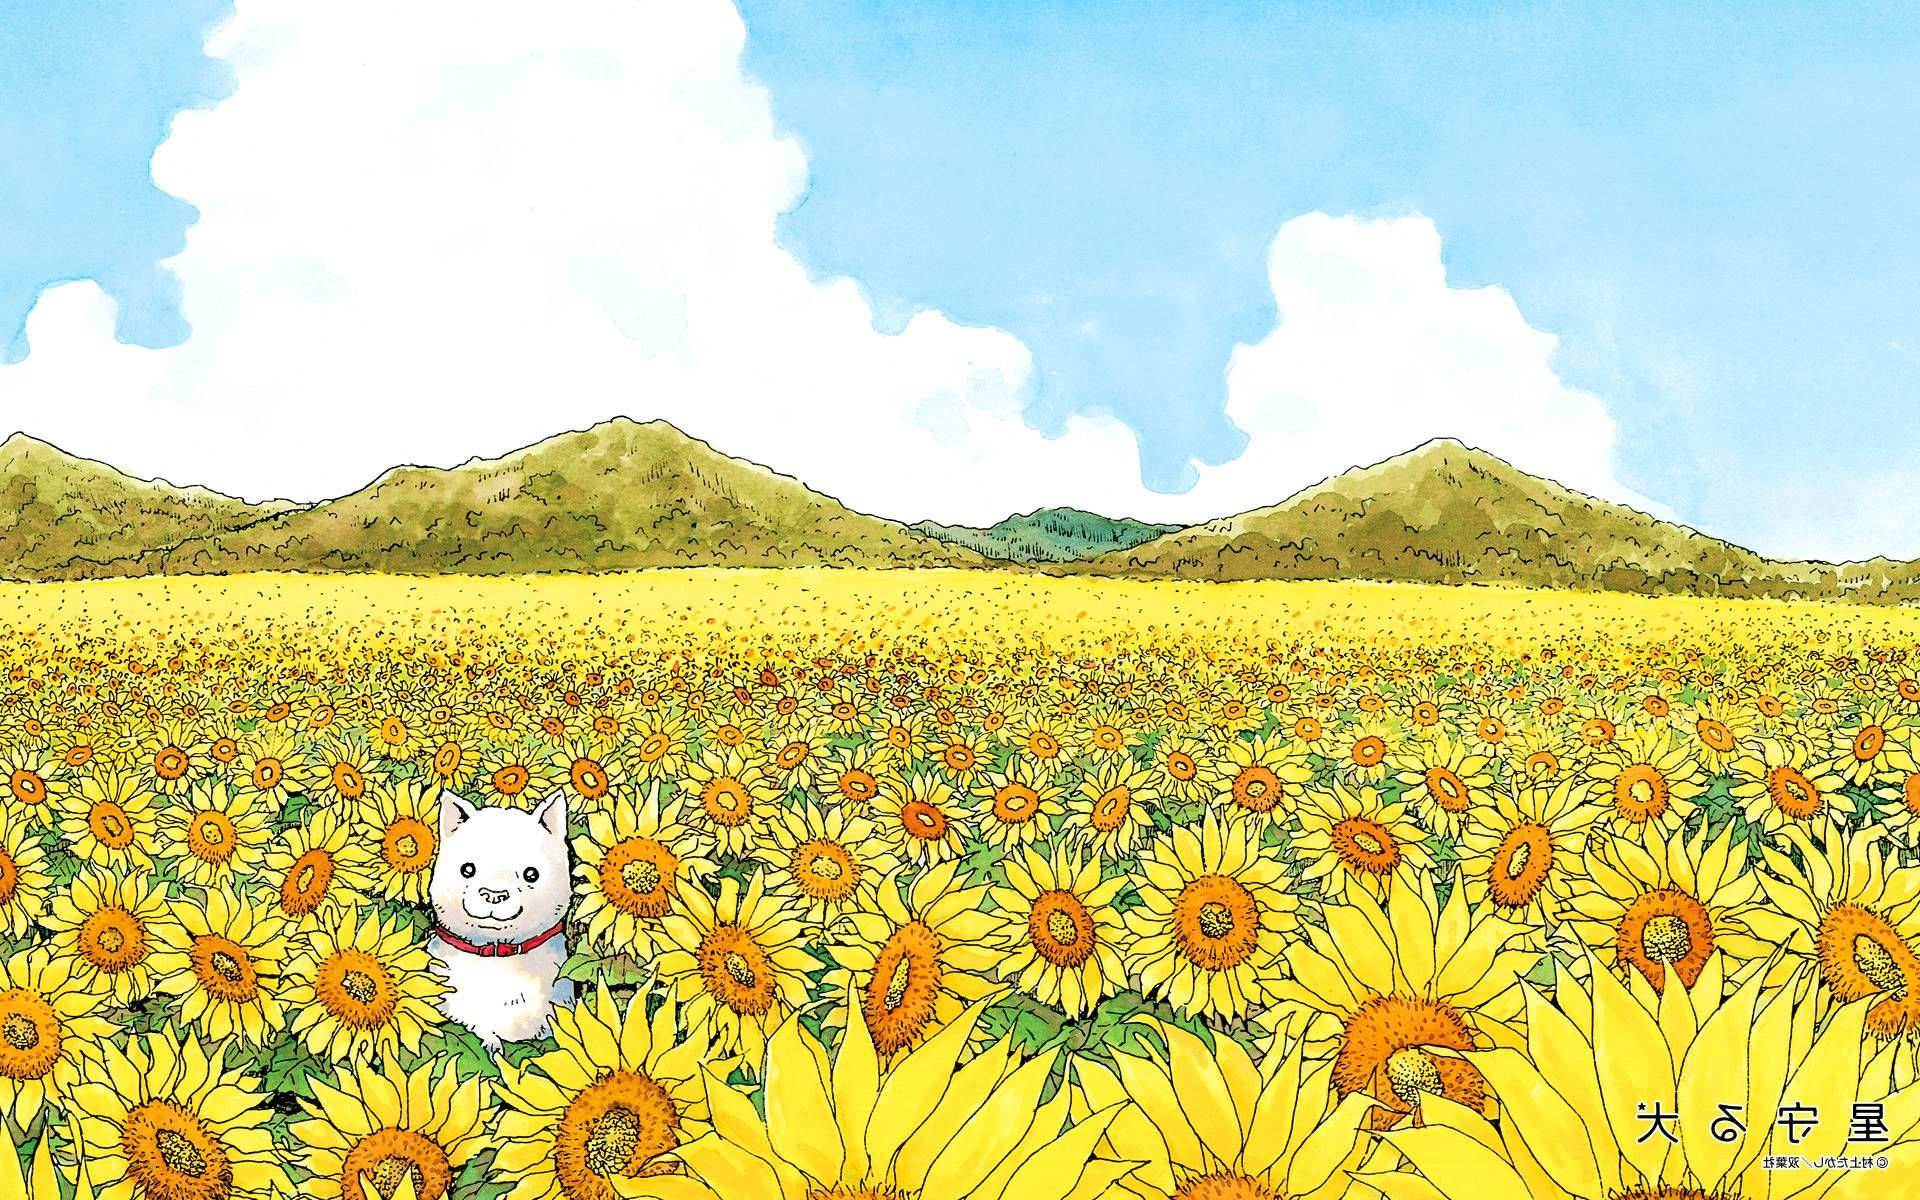 A dog in a field of flowers one of the less abstract but